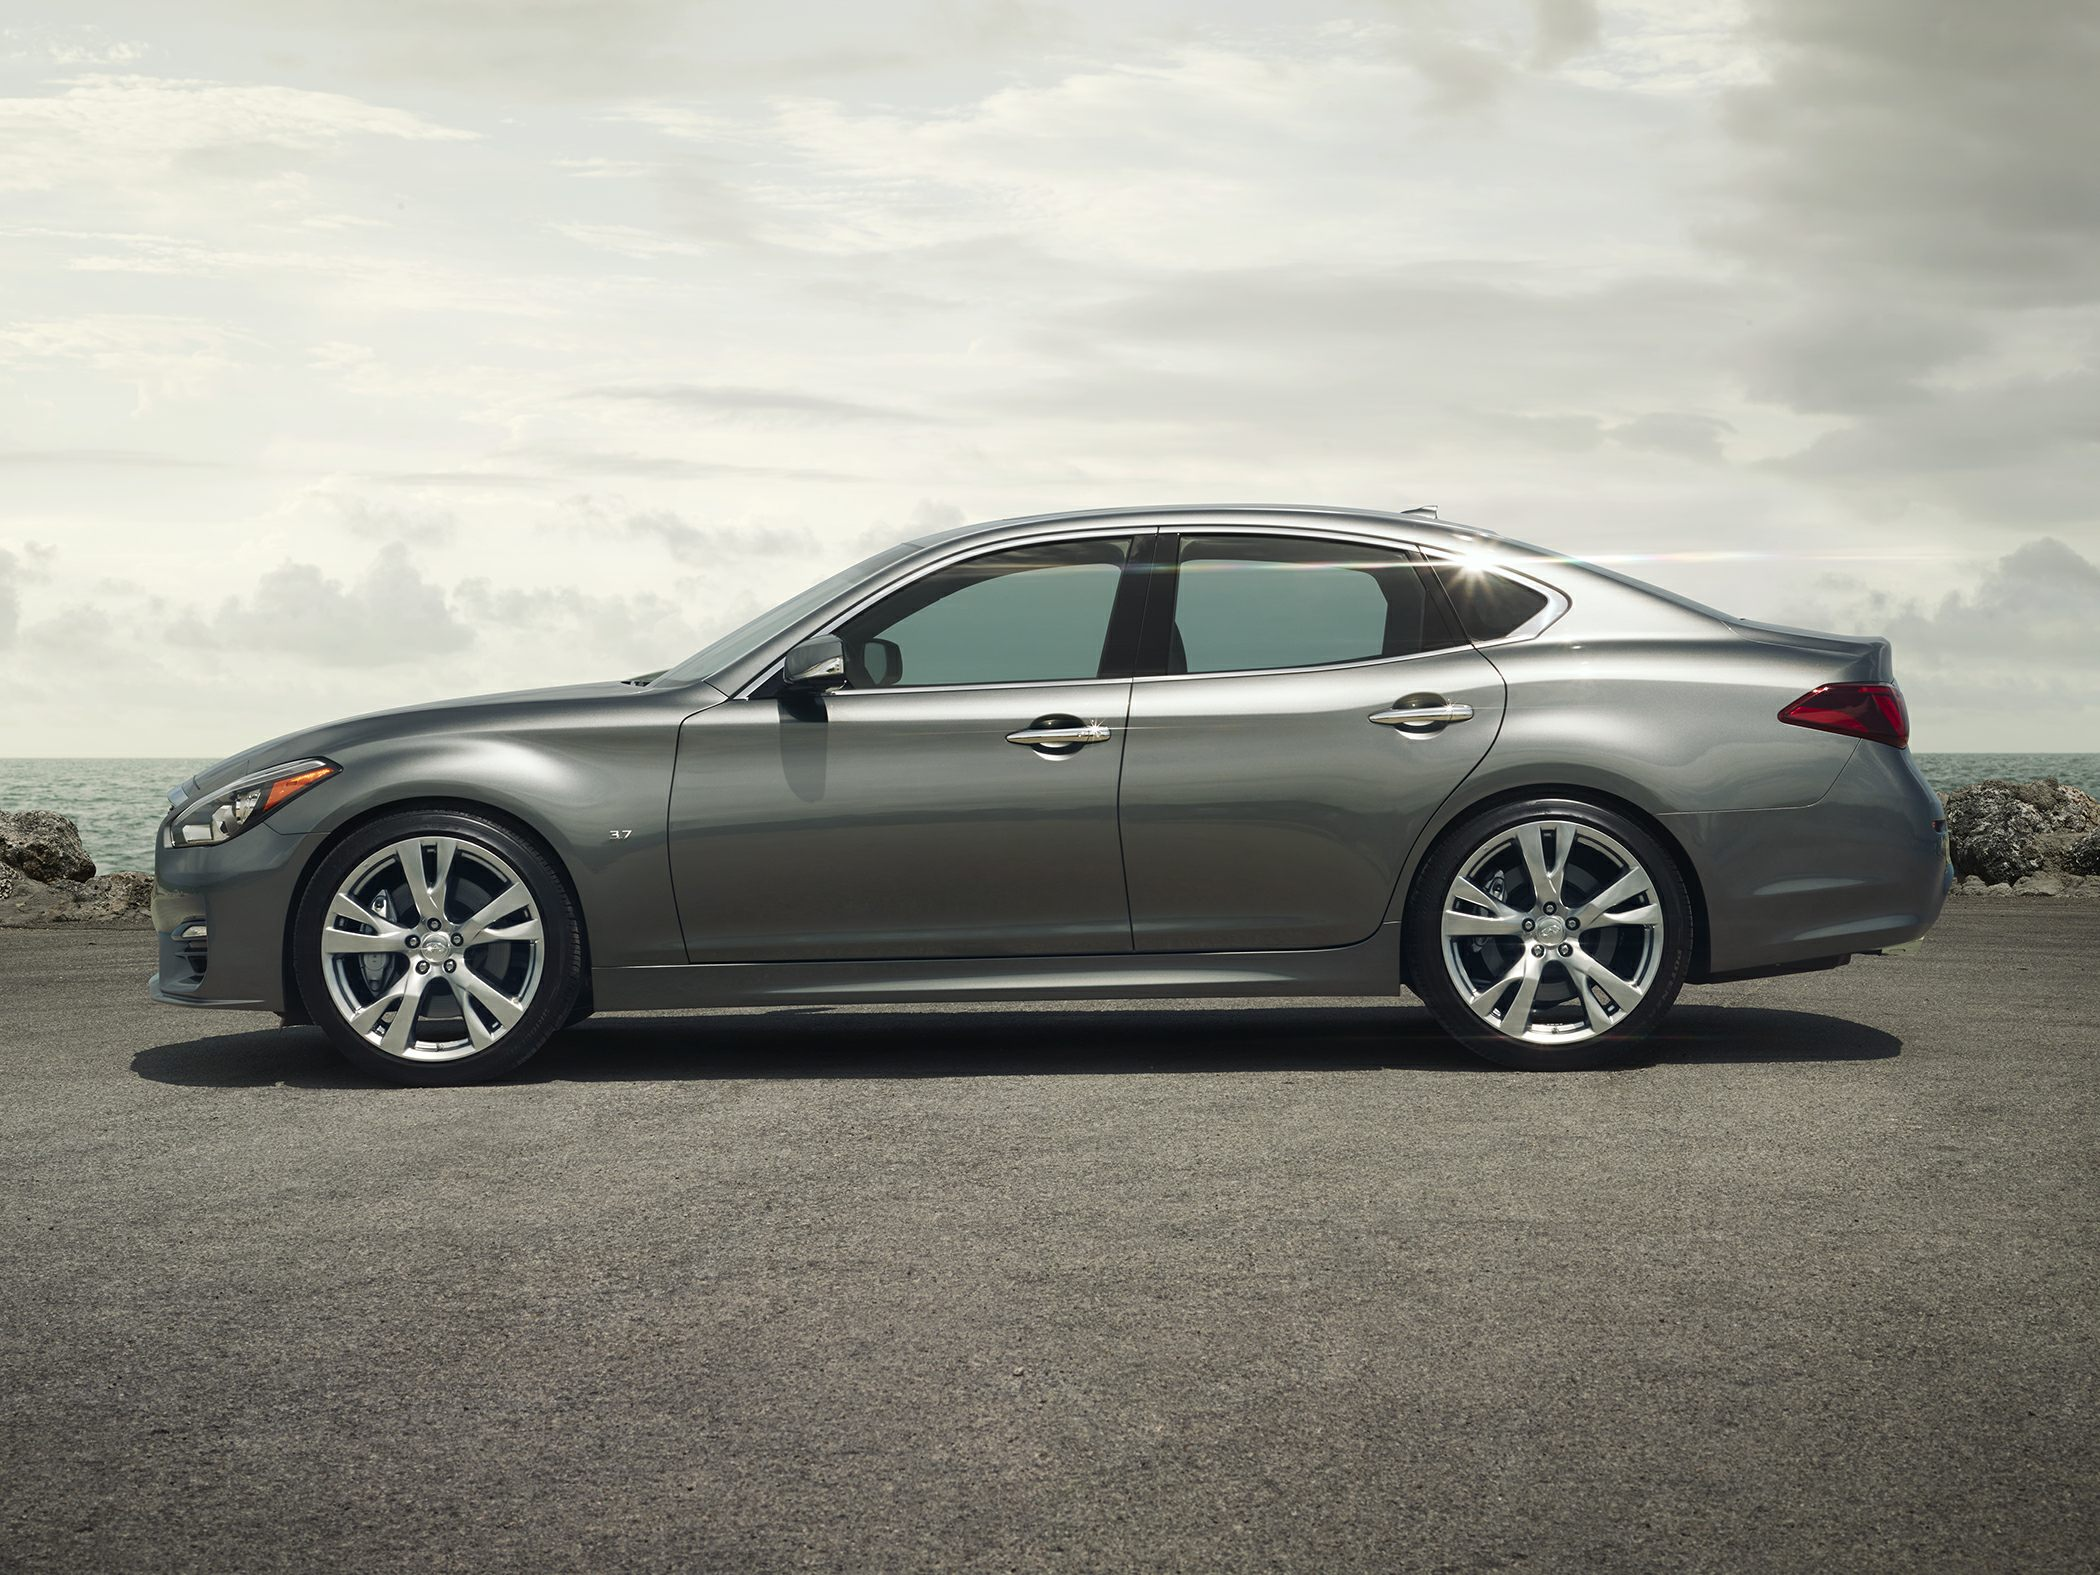 2017 infiniti q70 deals prices incentives leases overview infiniti q70 vanachro Choice Image